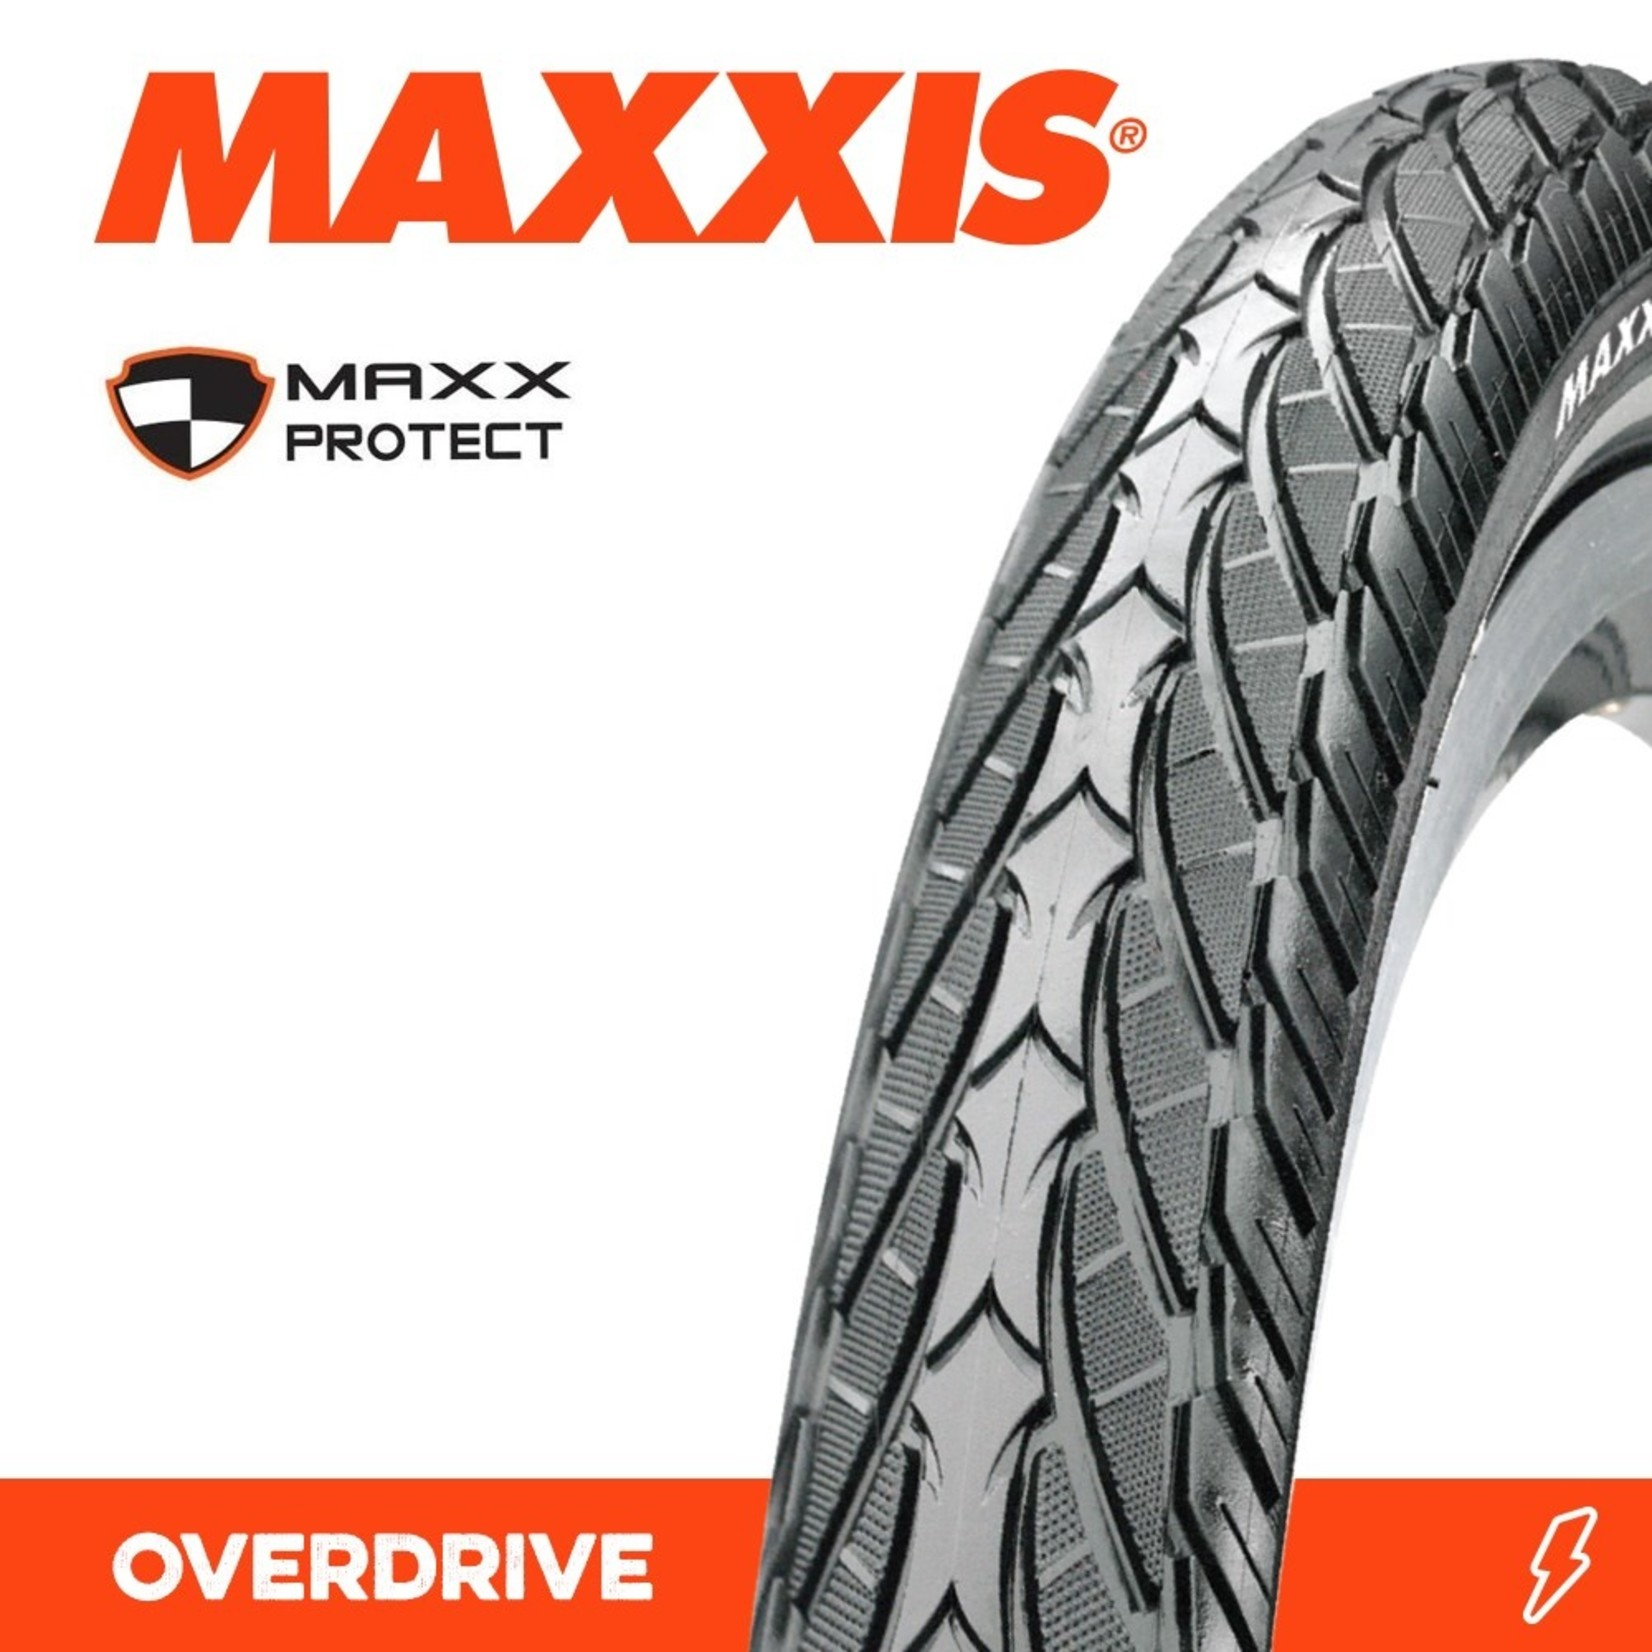 Maxxis Maxxis, Tyre Overdrive 700x40 Maxxprotect Wire 27TPI Black